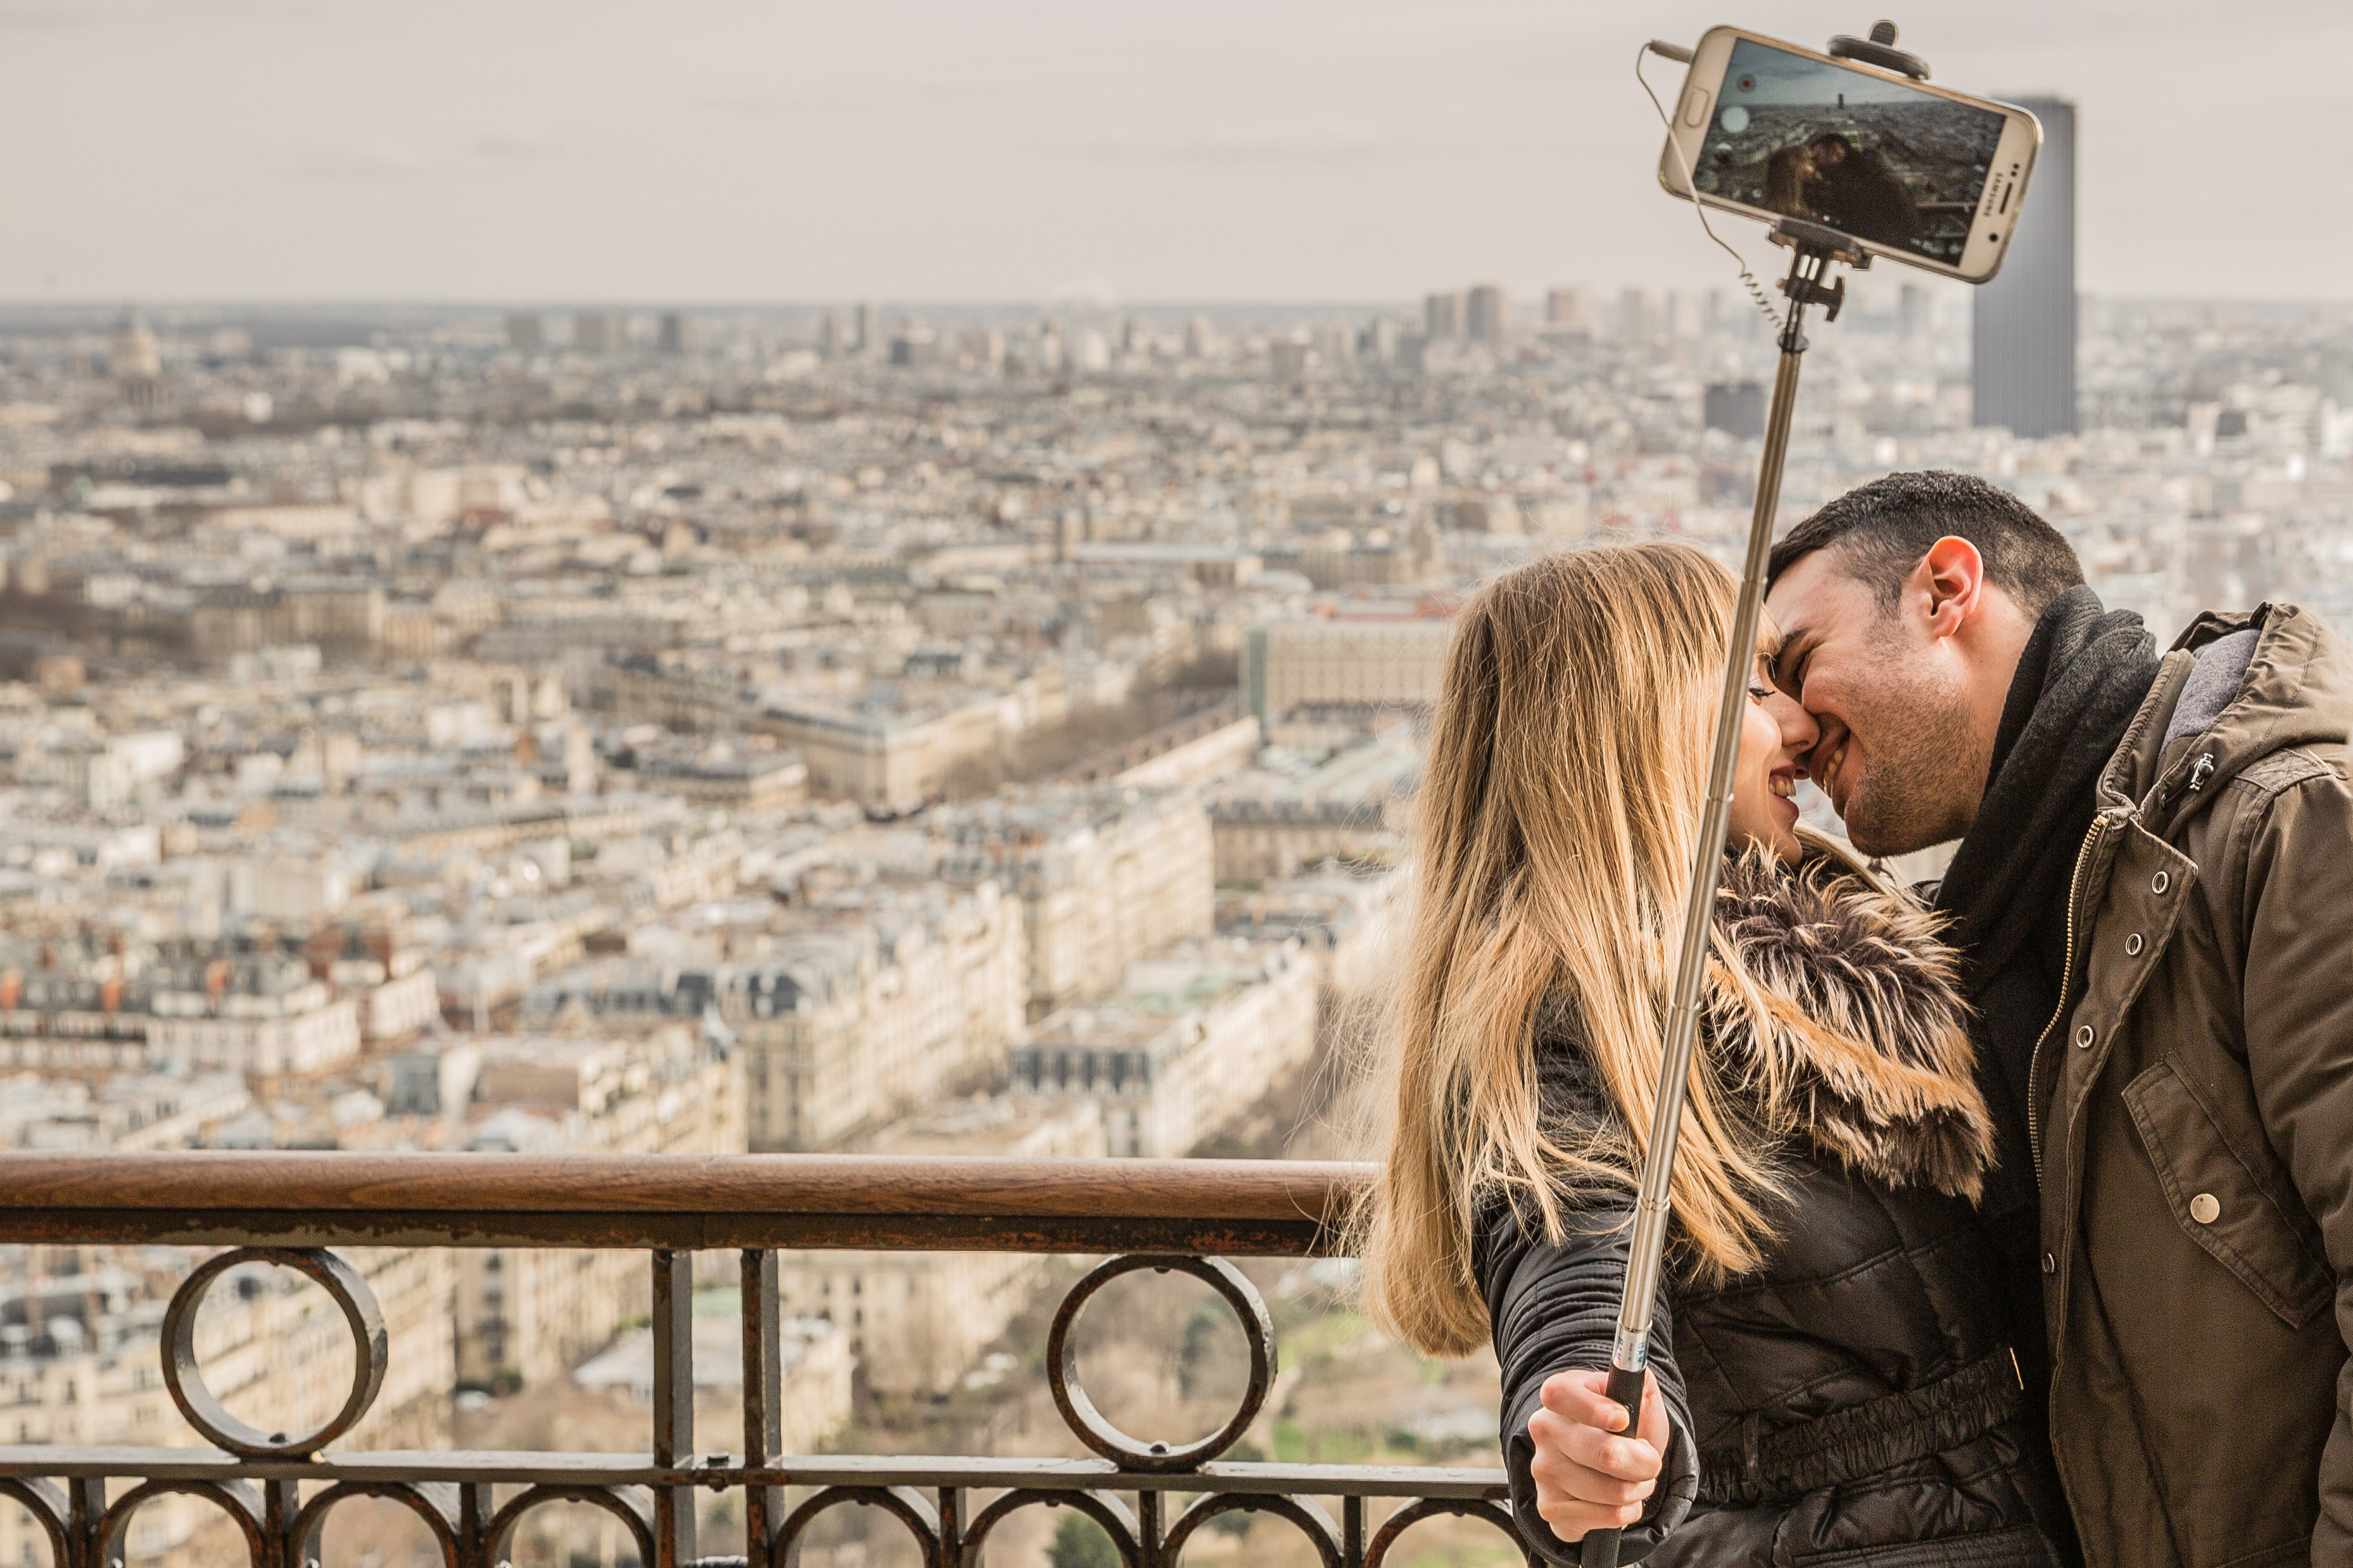 An in-depth review of the best selfie sticks available in 2019.